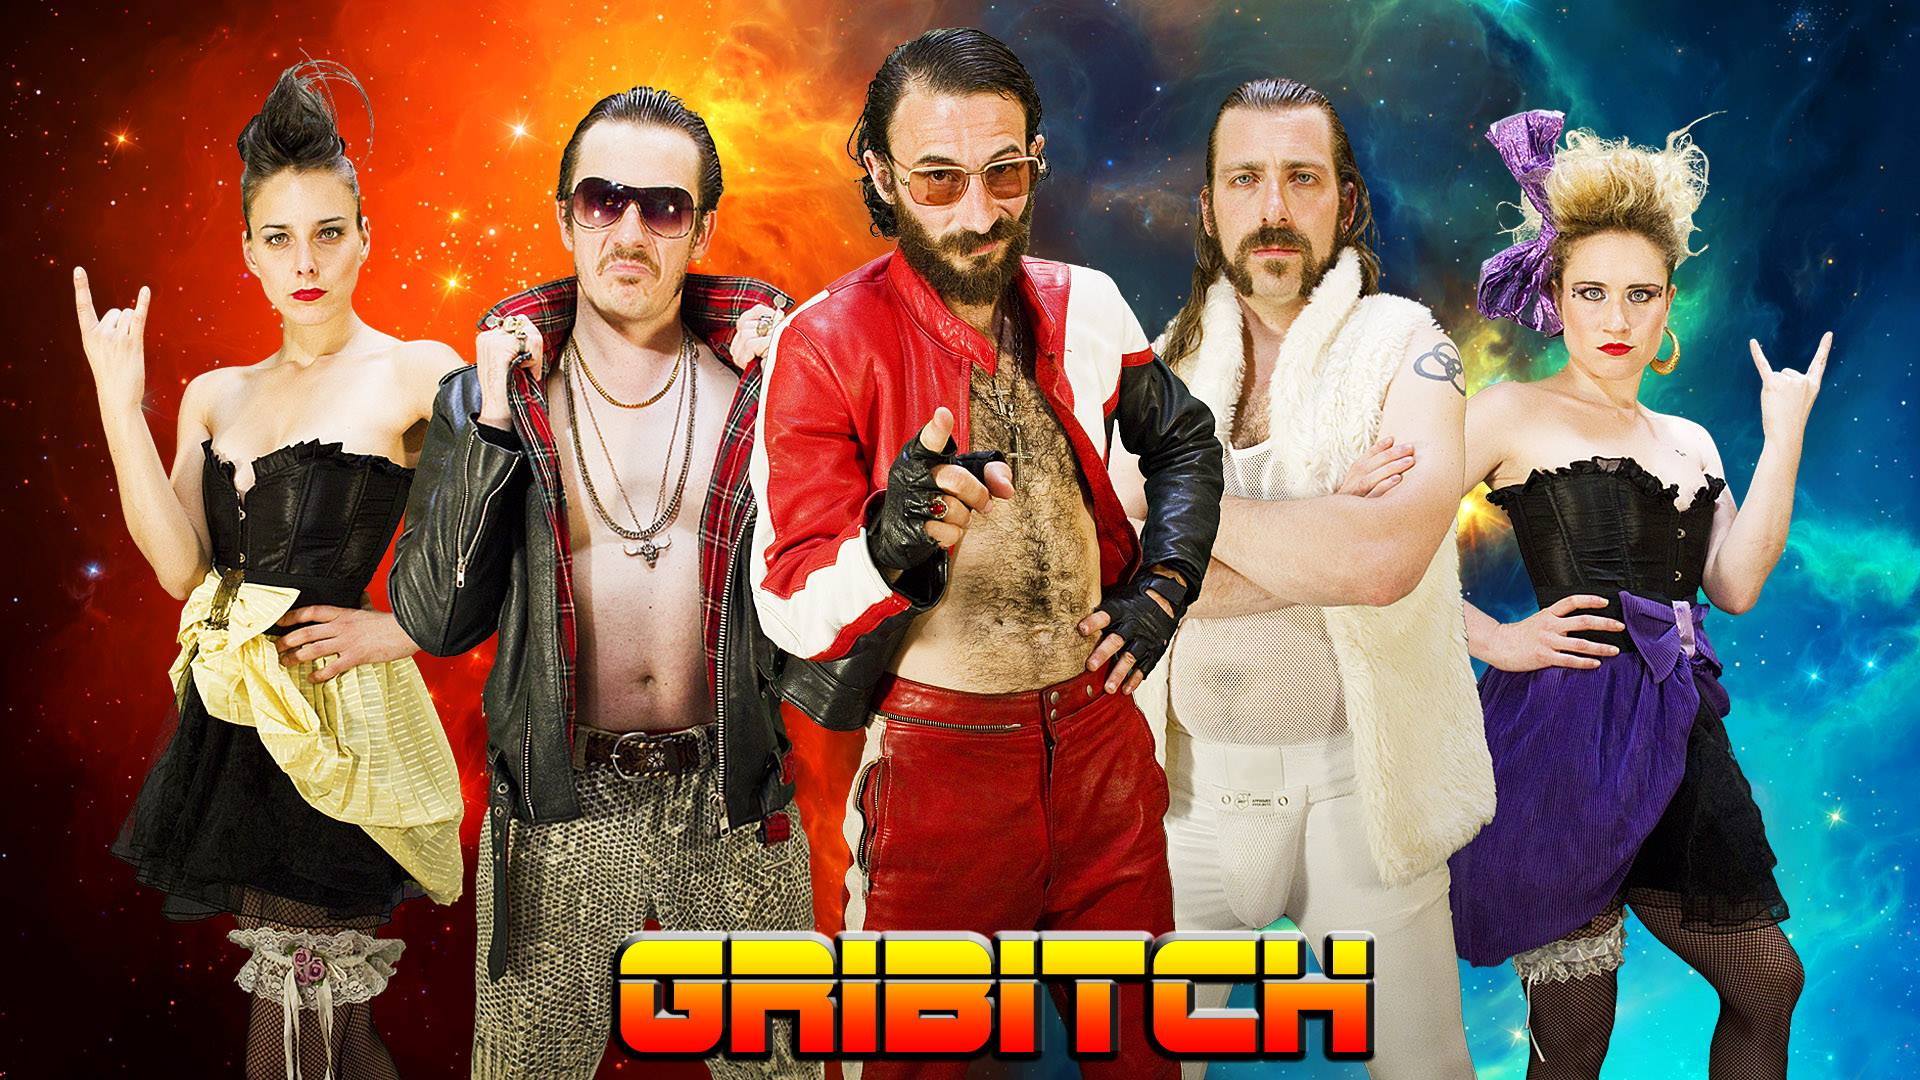 The Gribitch Brothers + Bonheurs Inutiles + Le Tortar